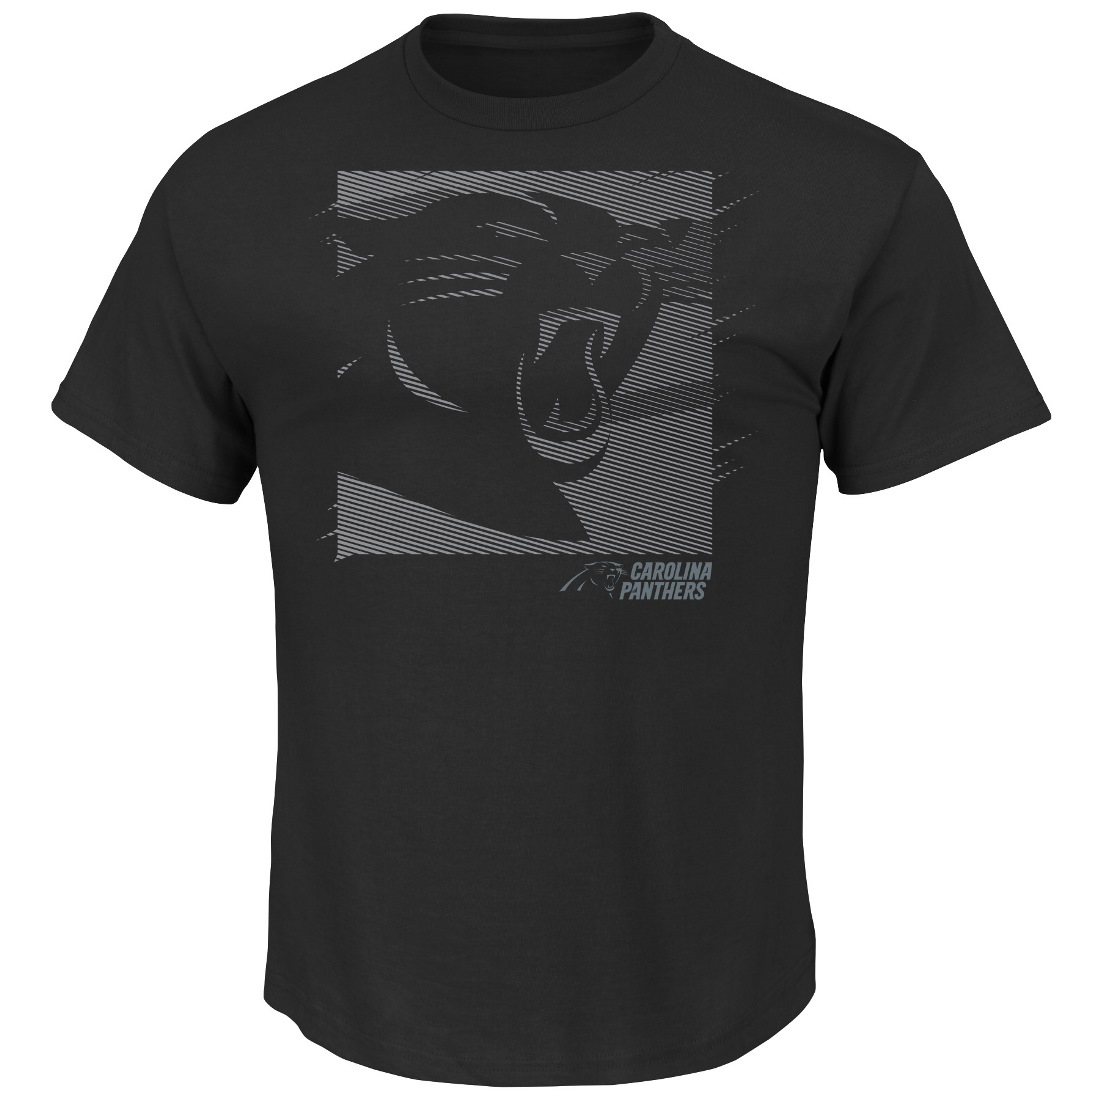 "Carolina Panthers Majestic NFL ""Right Direction"" Men's S/S Premium T-Shirt"